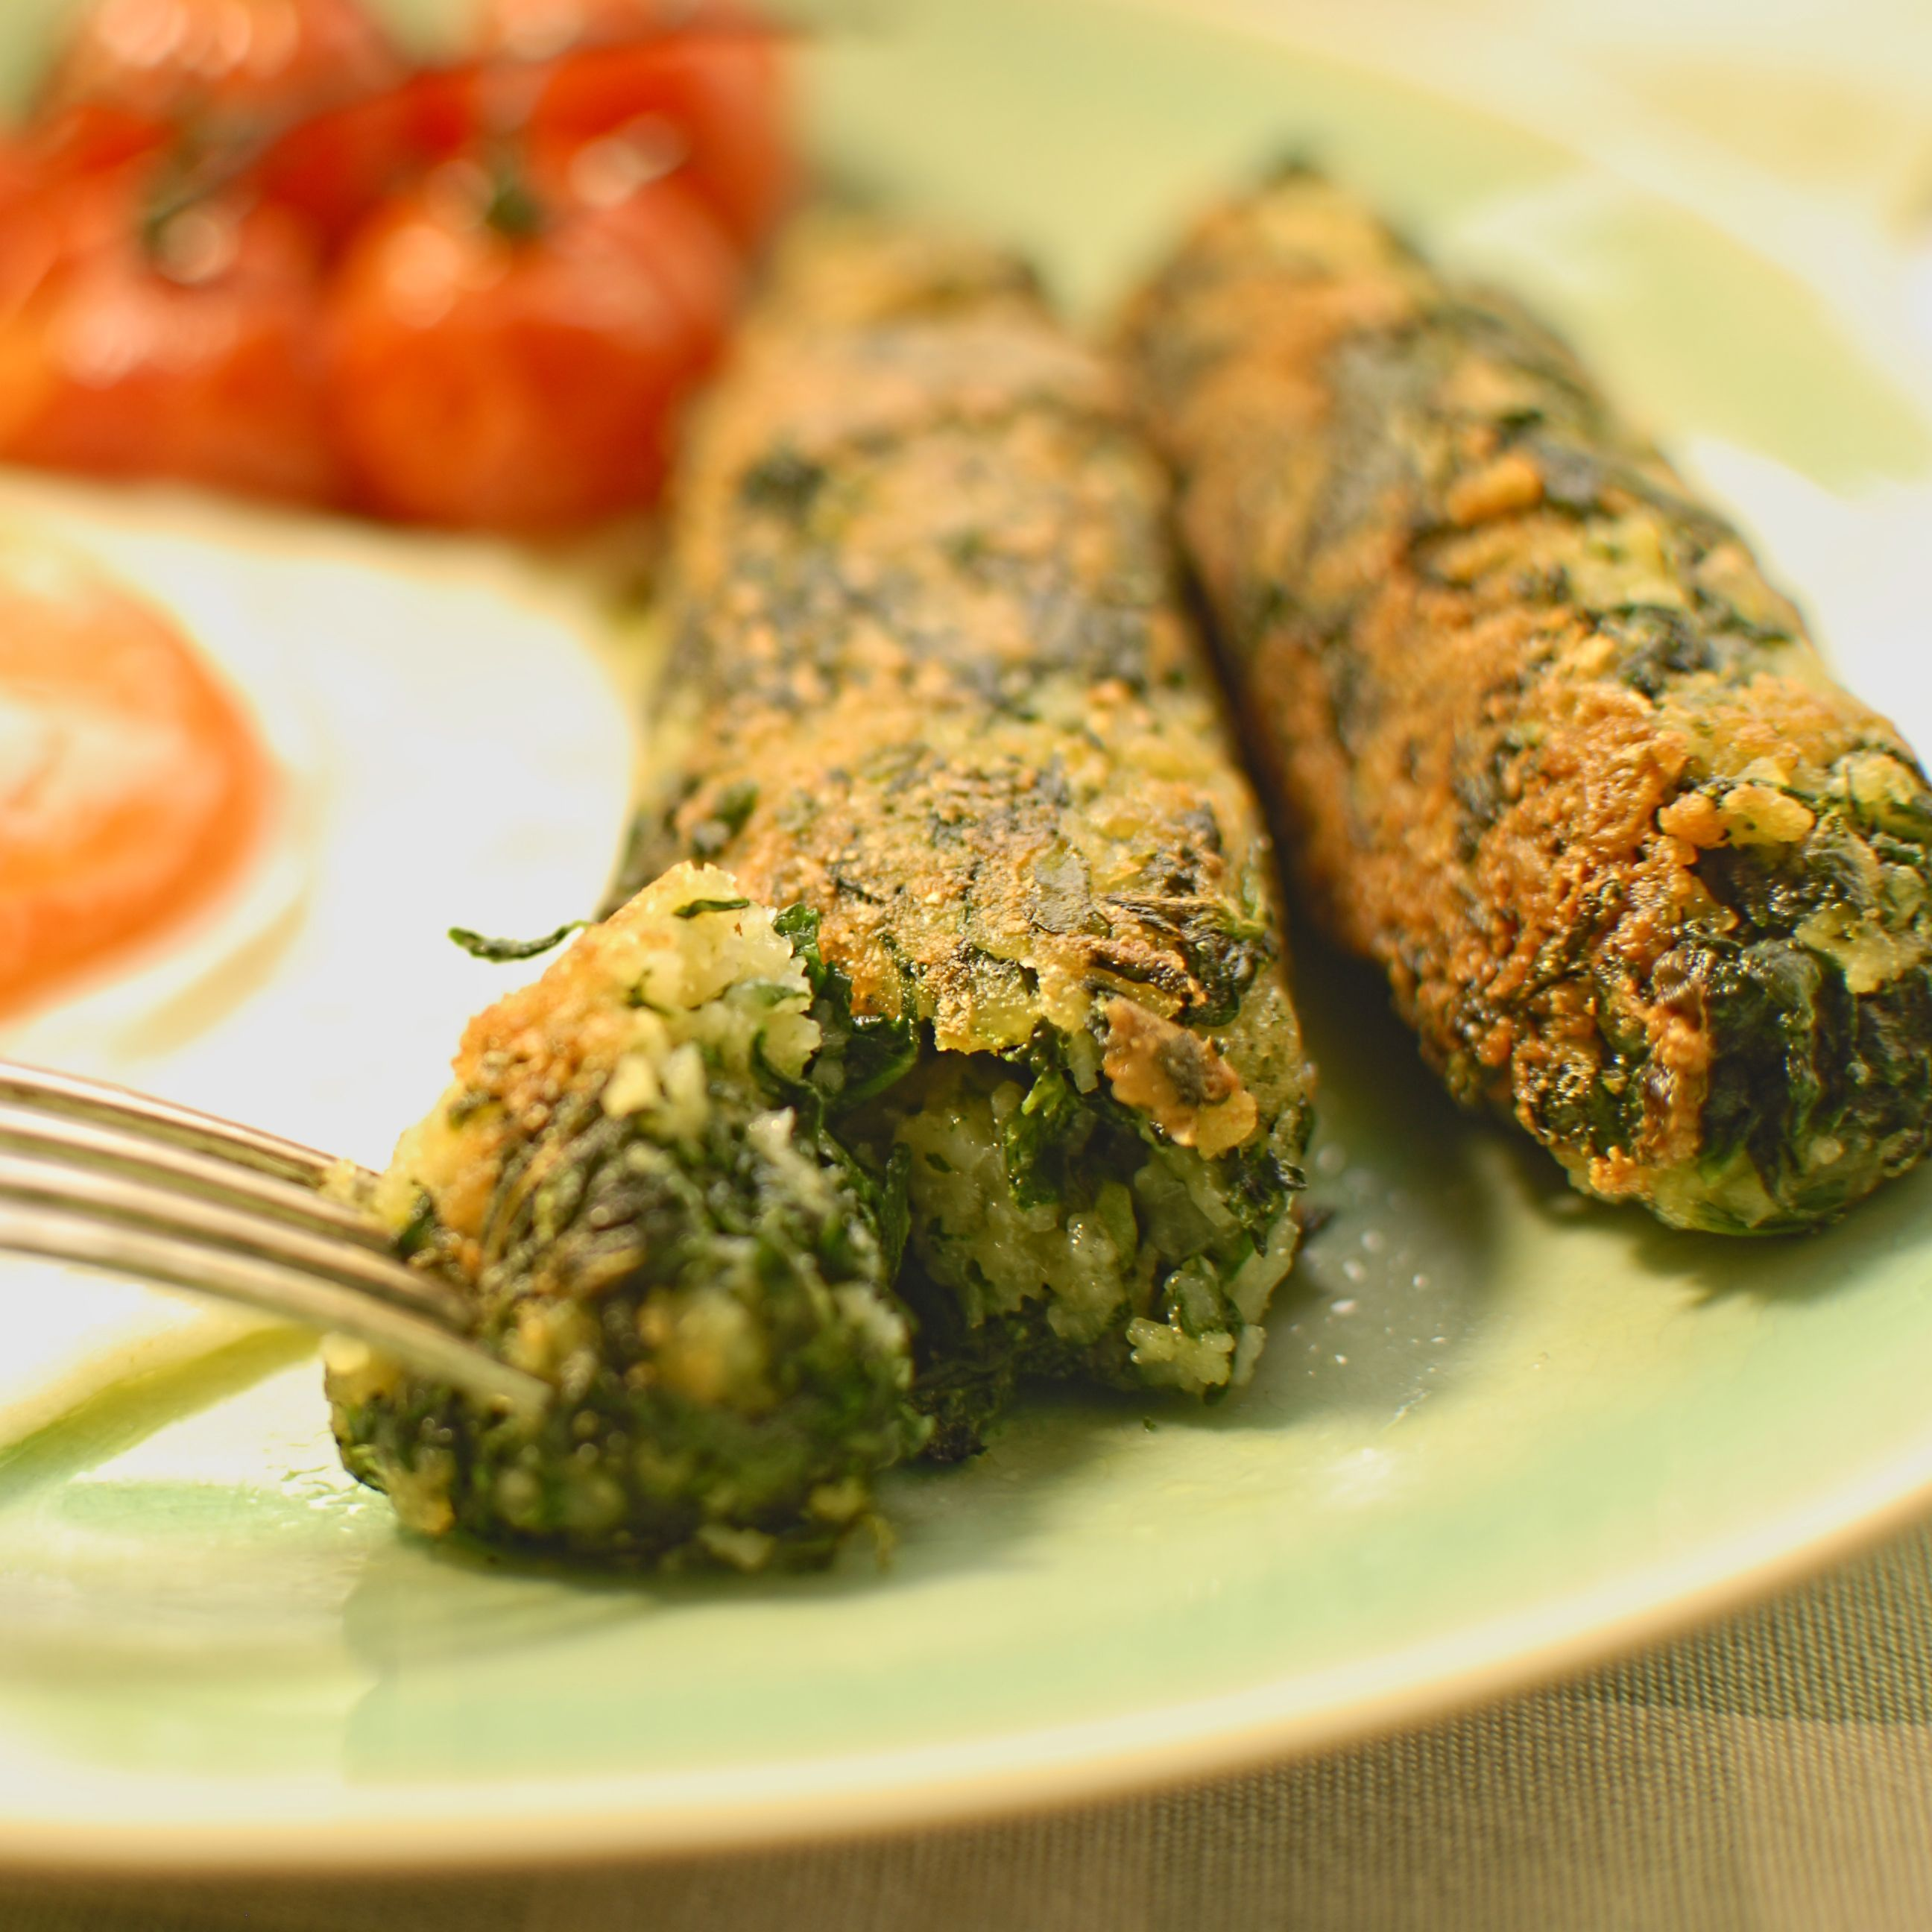 spinach and parmesan sausages > 7/10